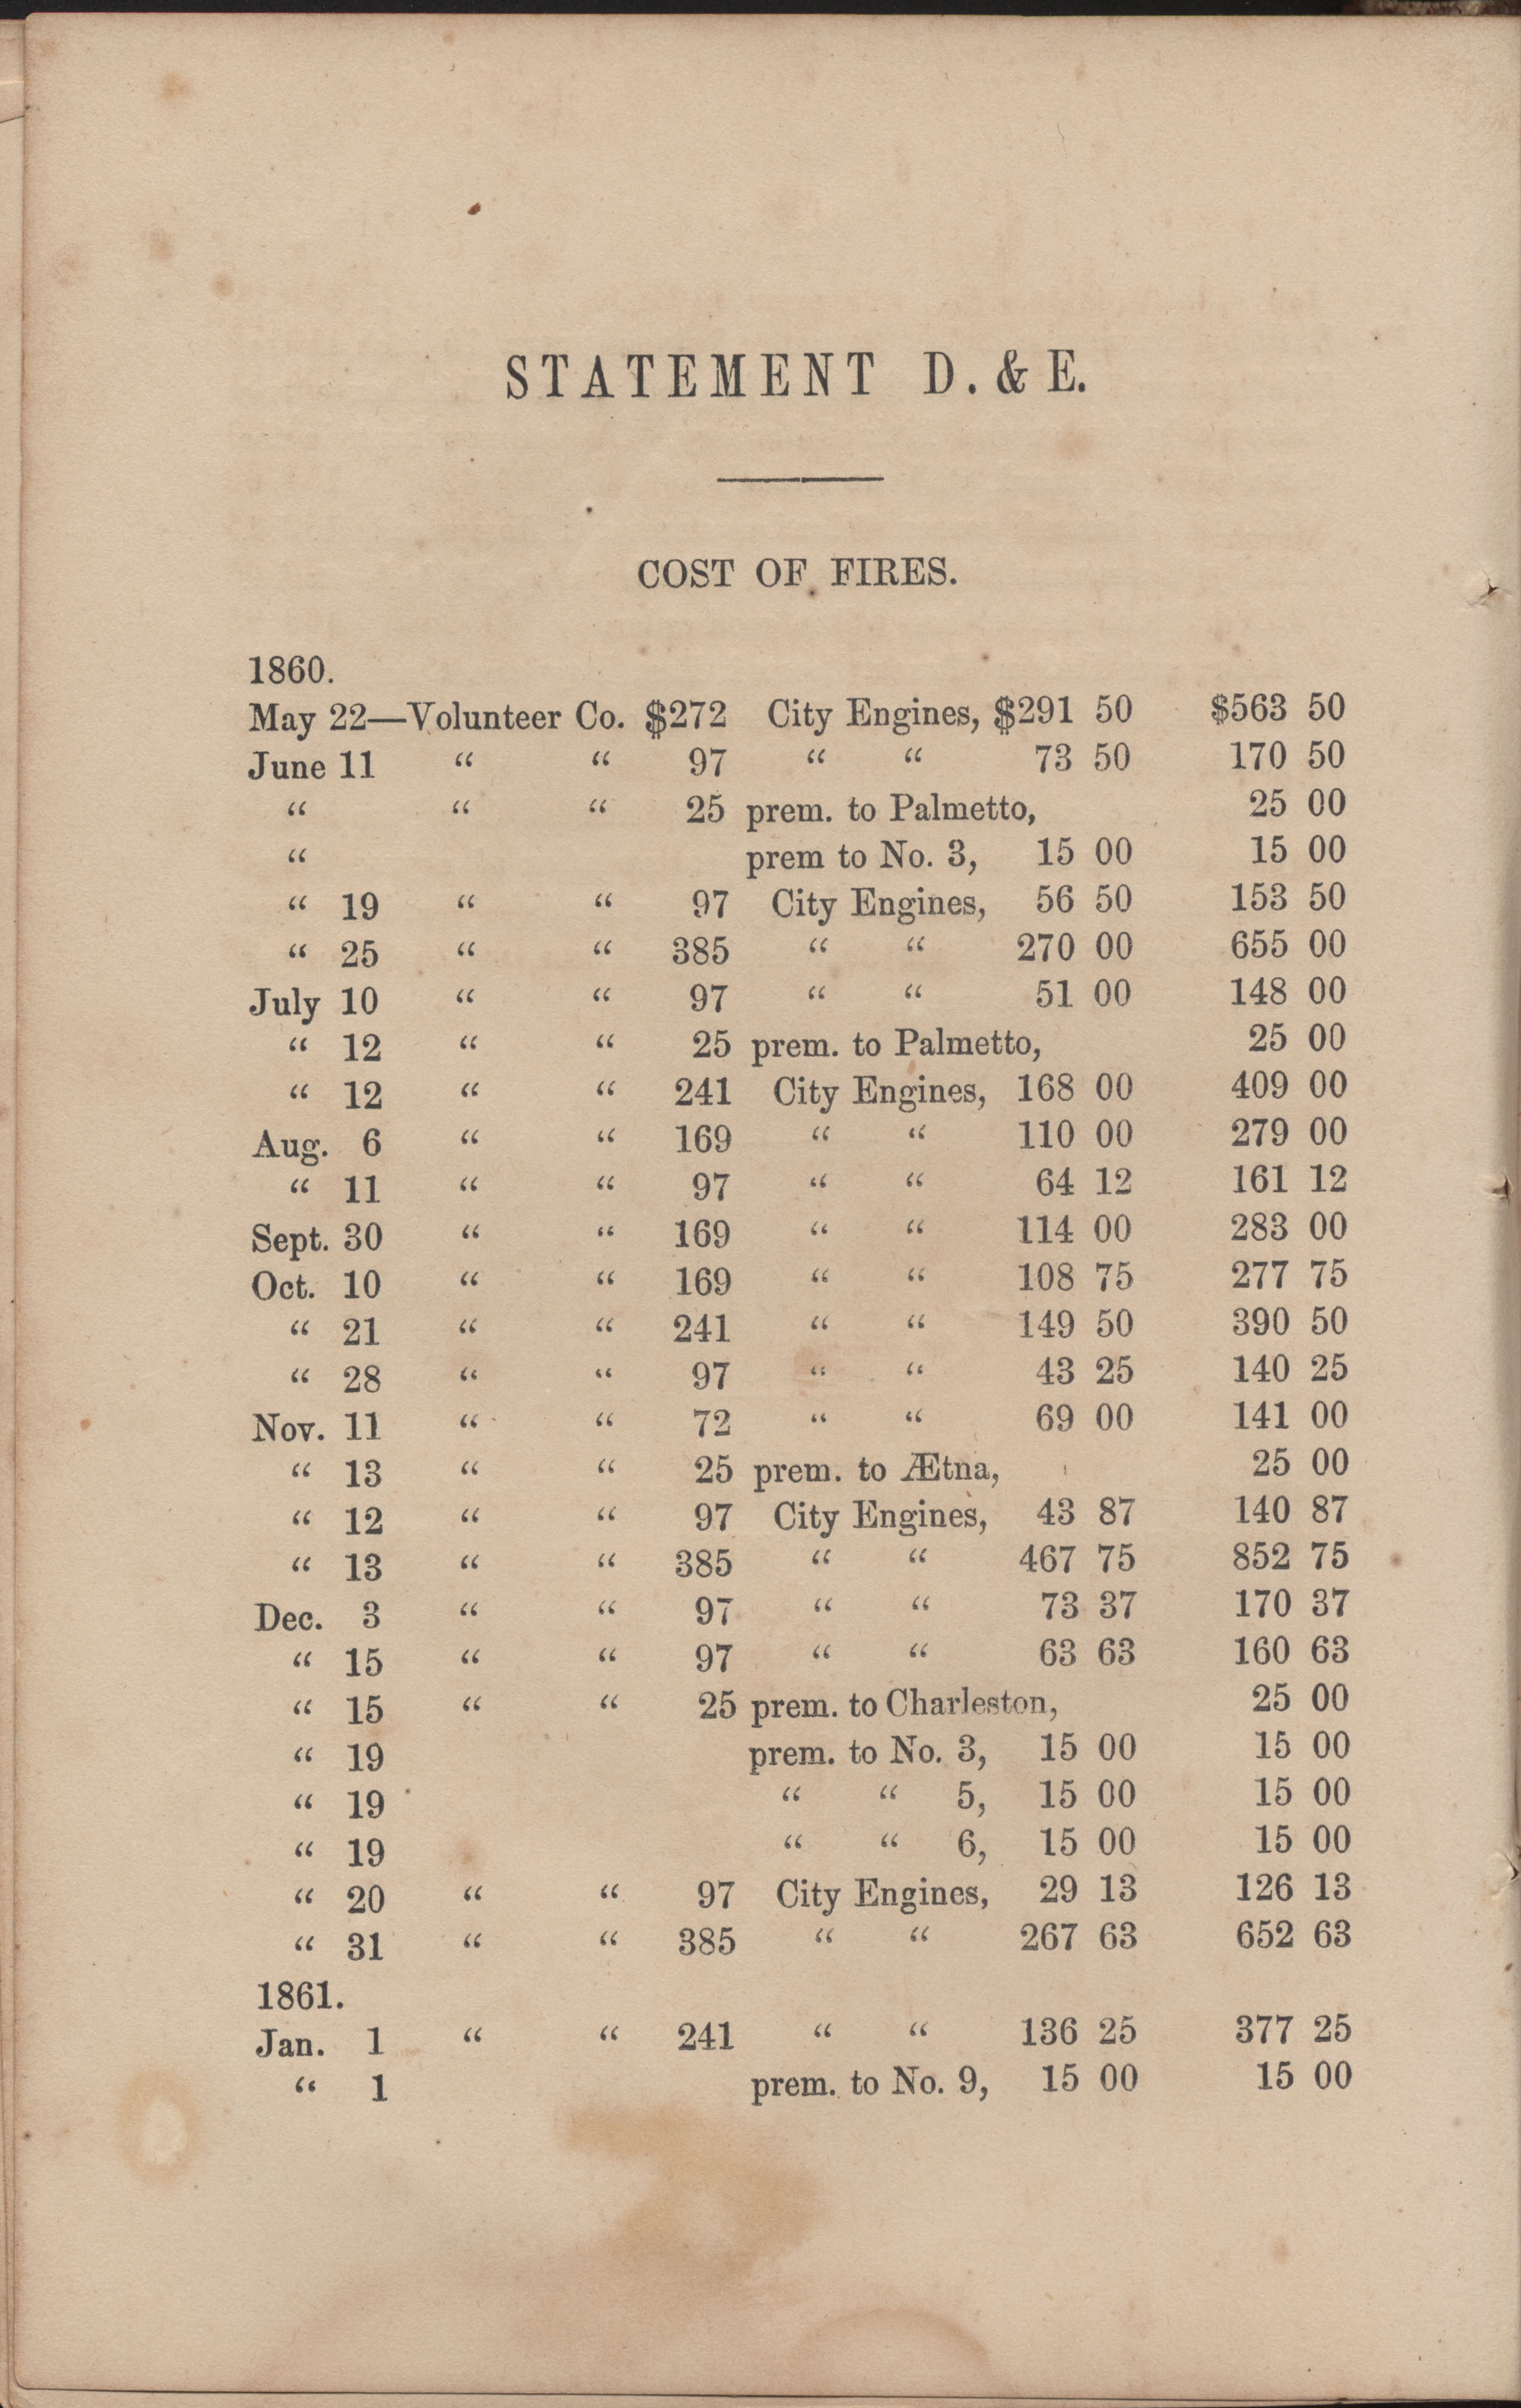 Annual Report of the Chief of the Fire Department of the City of Charleston, page 93